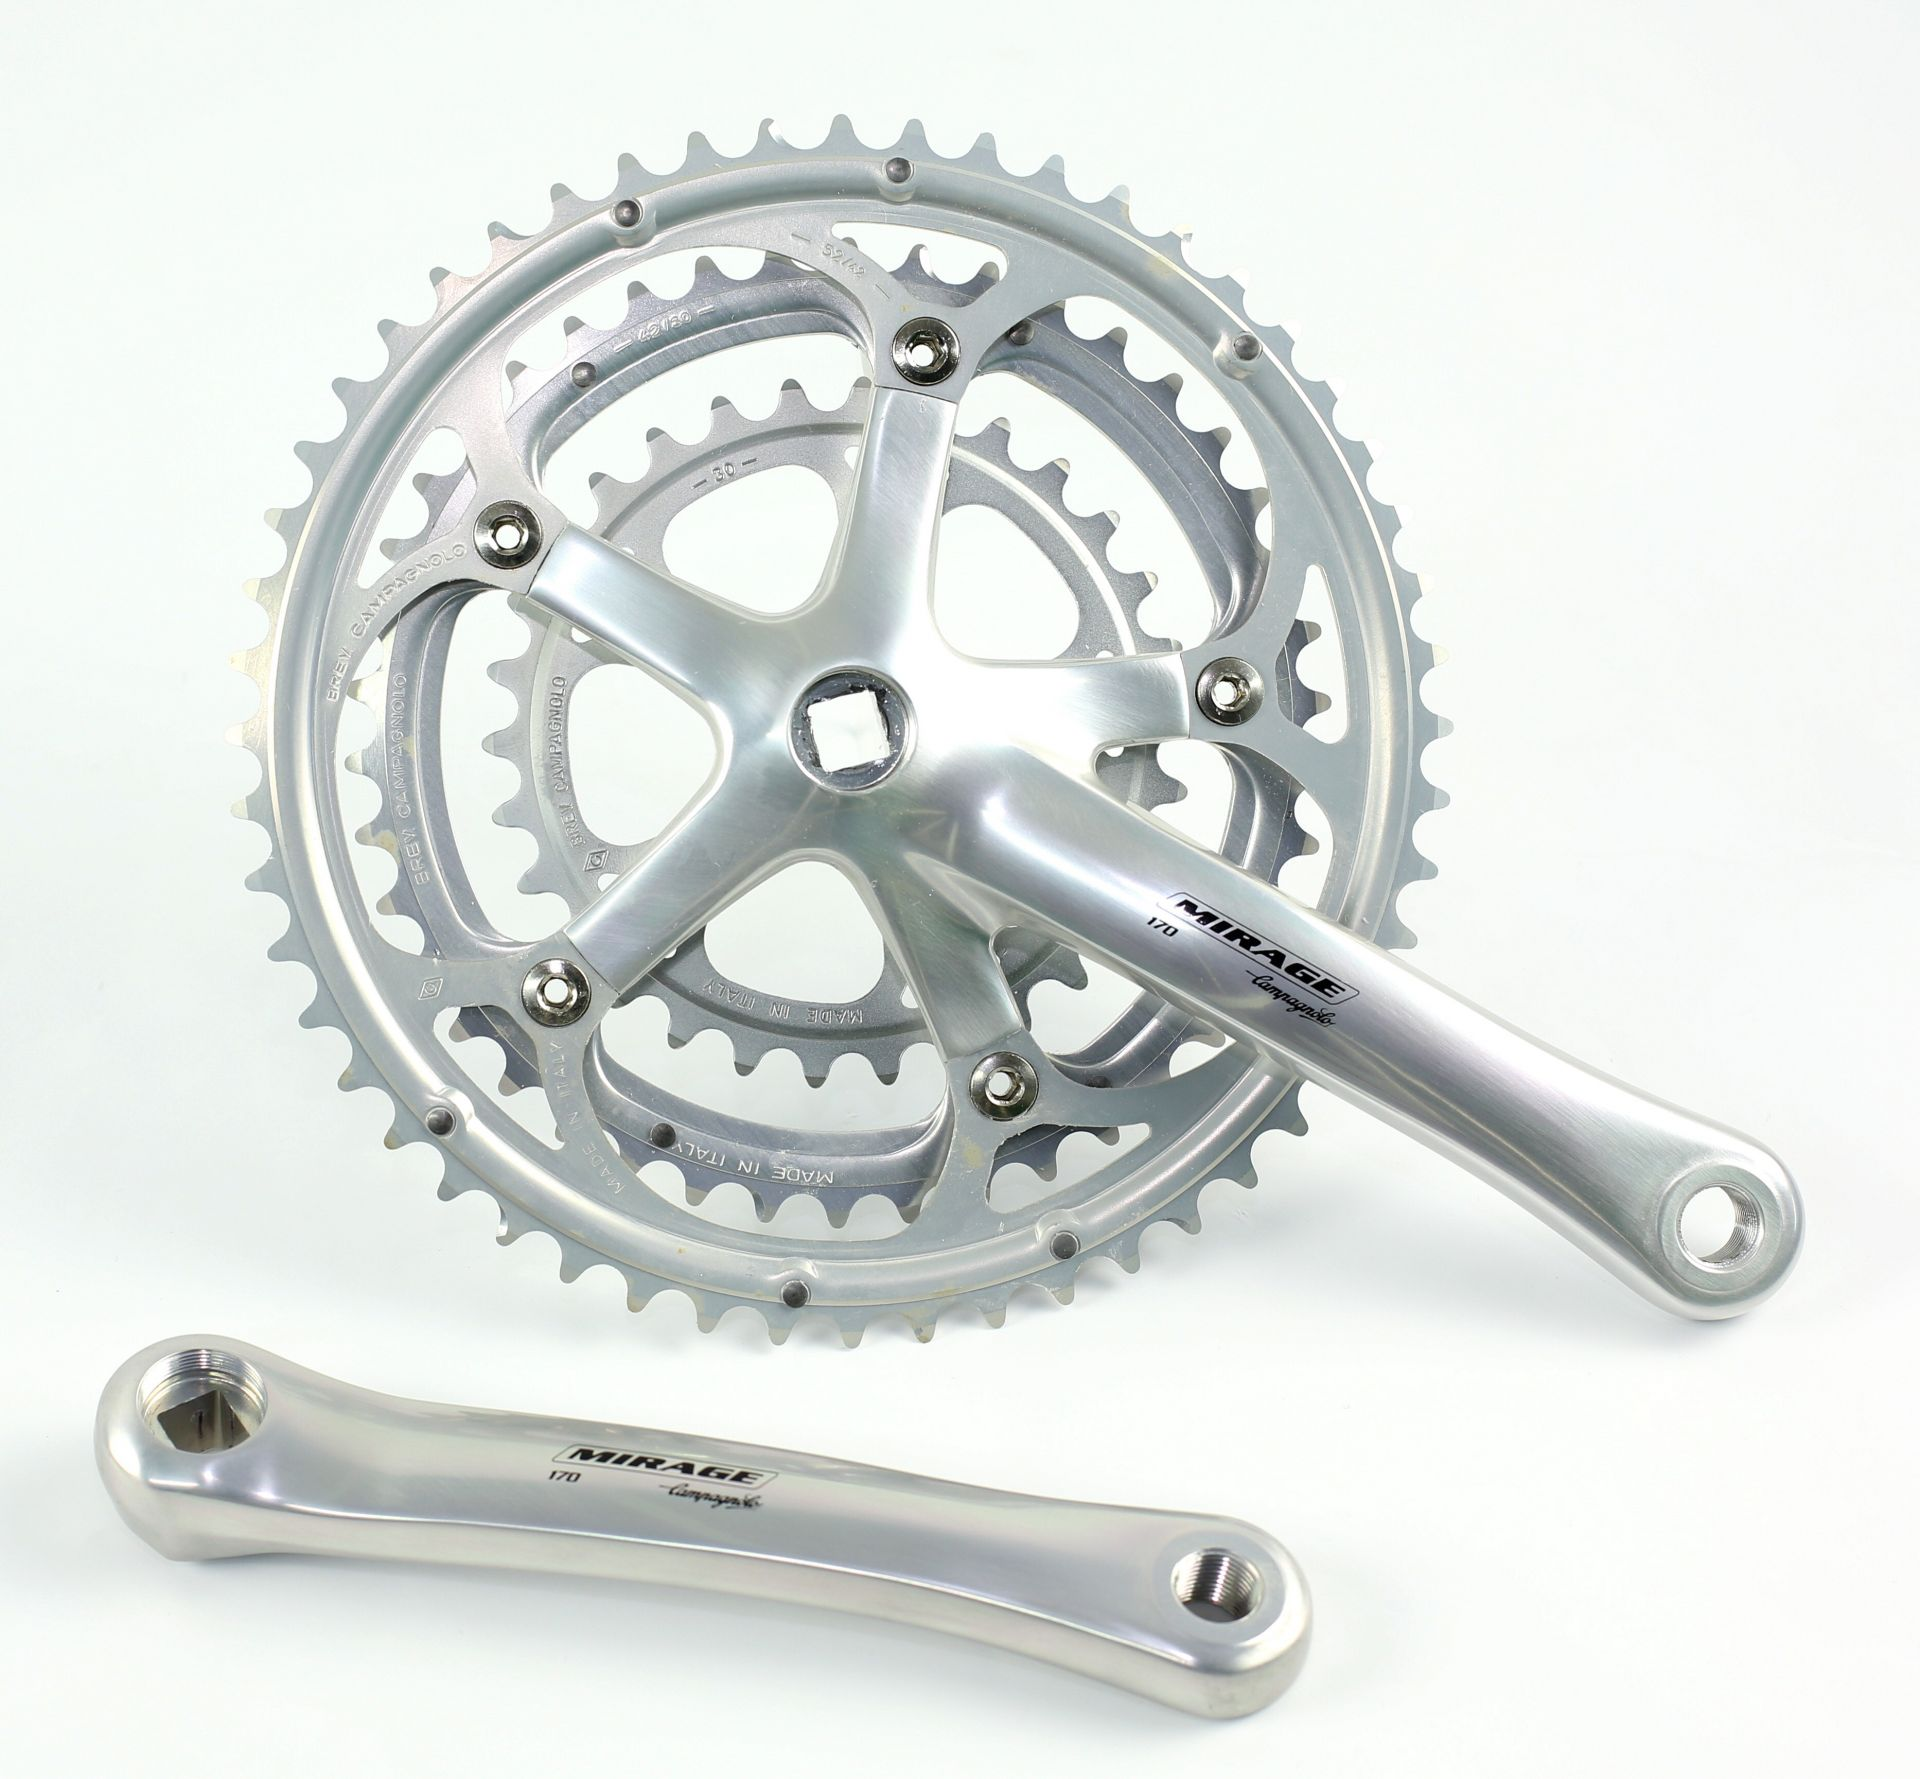 Pédalier Campagnolo Mirage triple 9V carré 170 mm